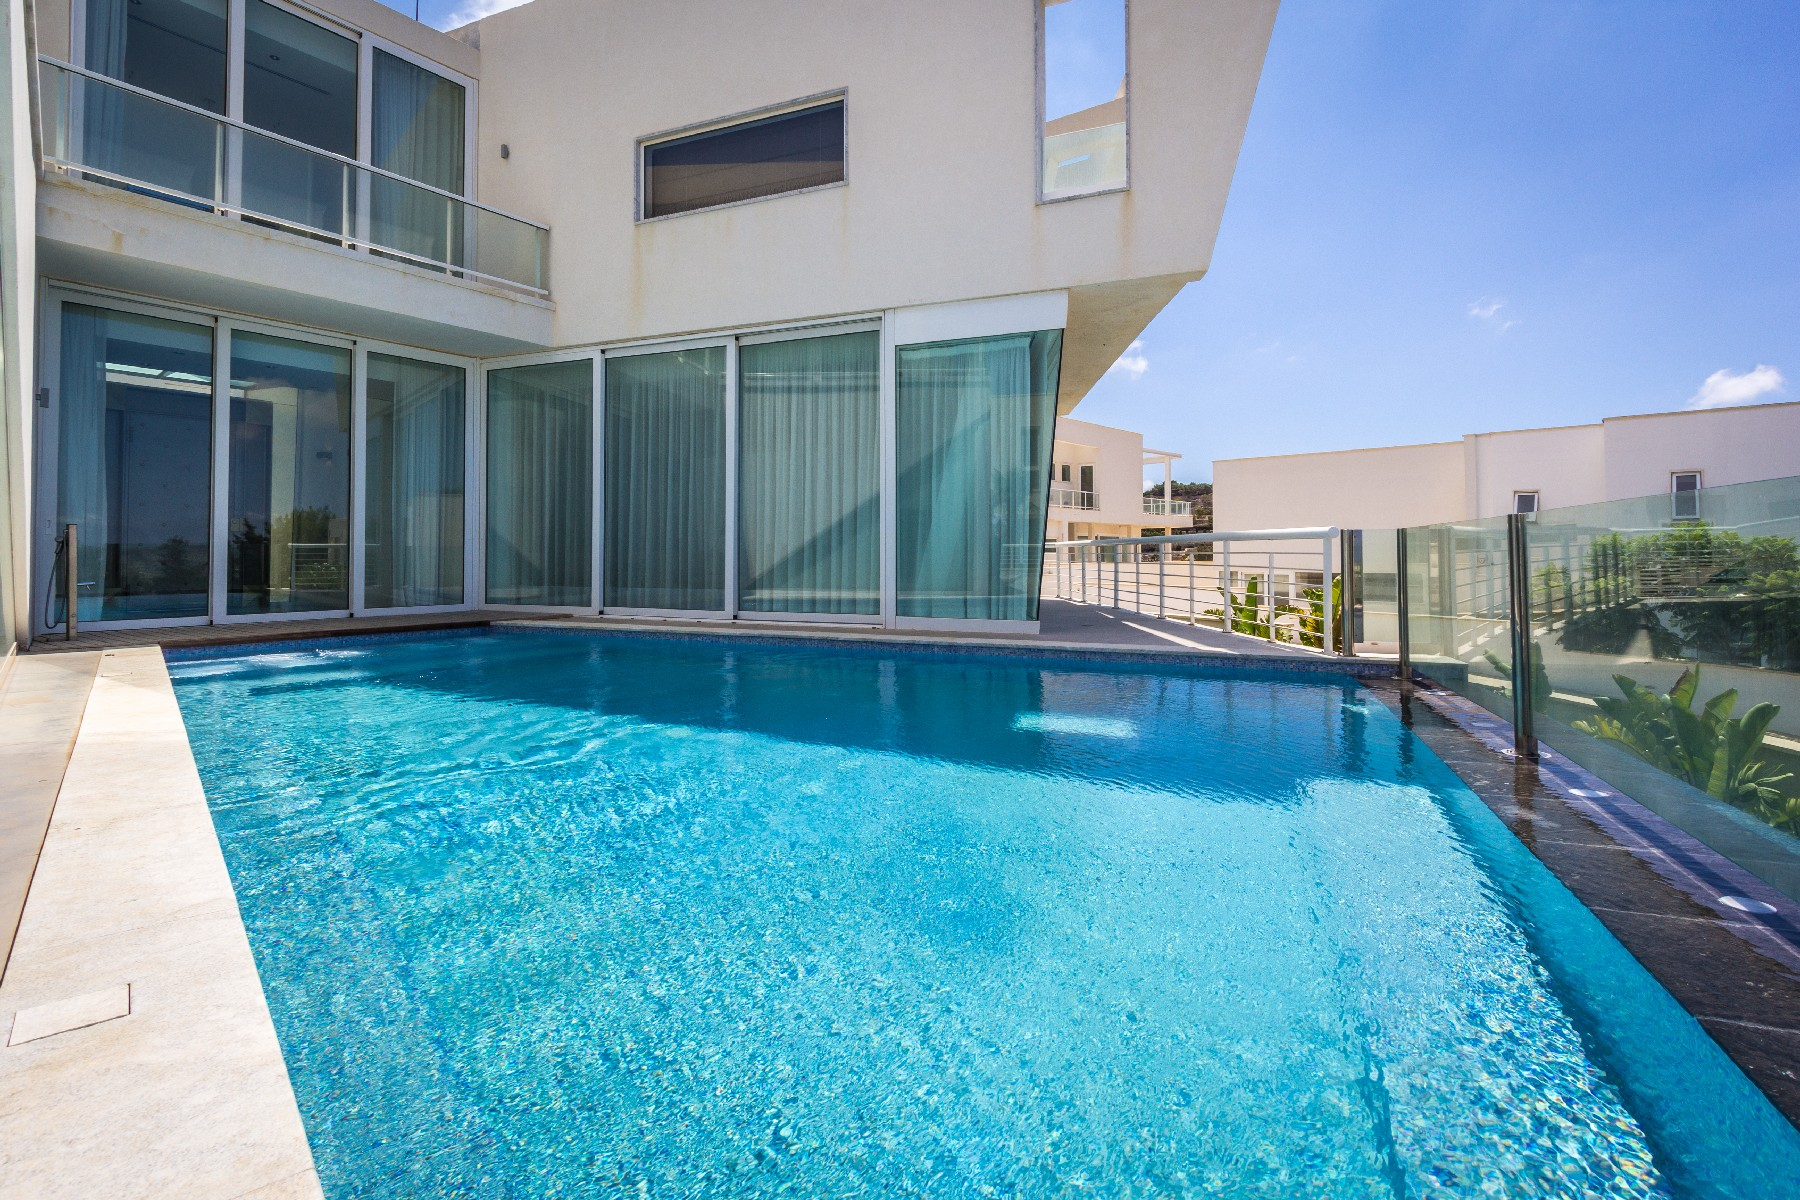 Single Family Home for Sale at Detached Villa Madliena, Malta